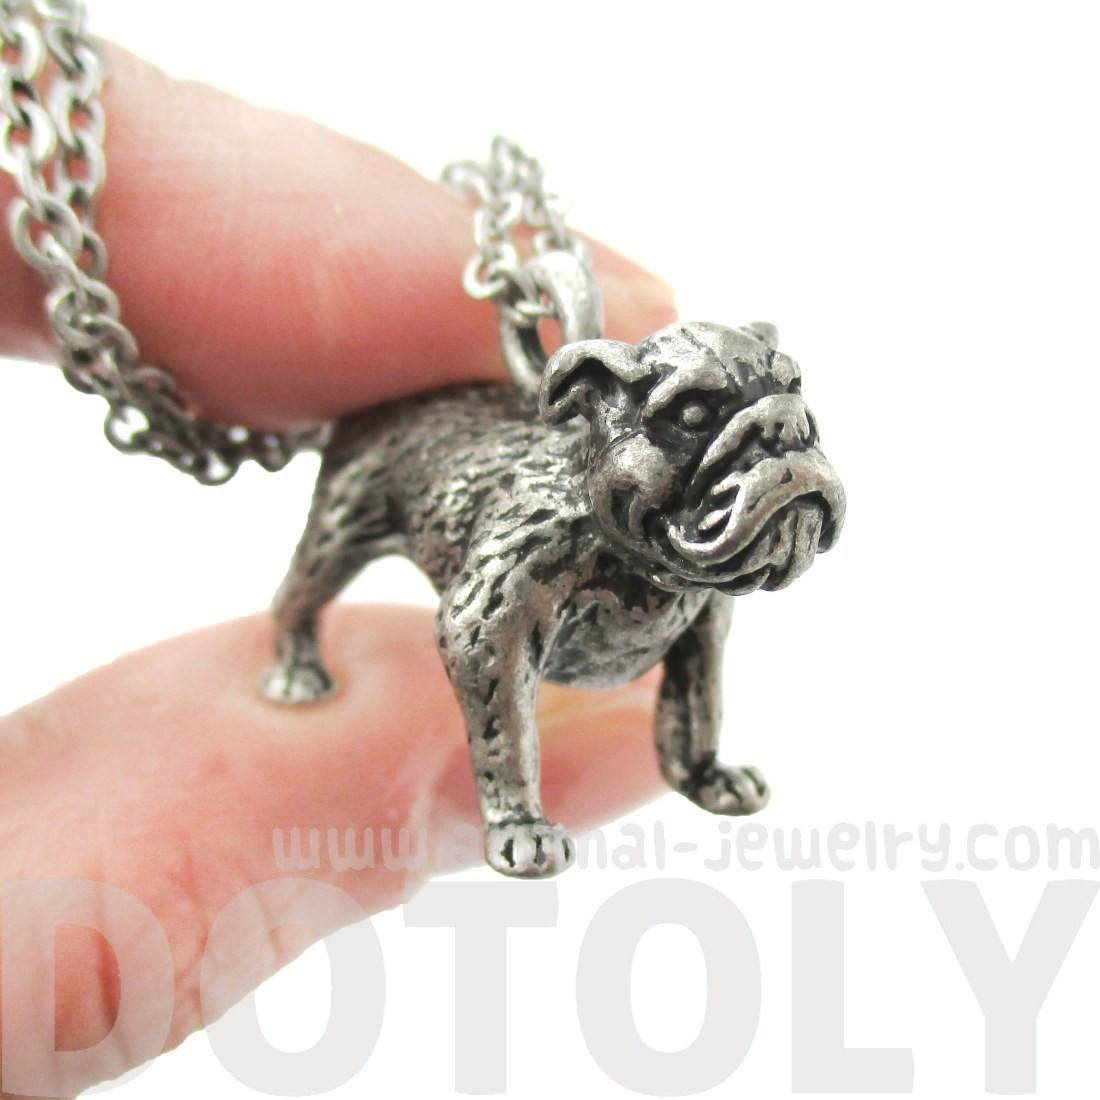 Realistic Life Like Bulldog Shaped Animal Pendant Necklace in Silver